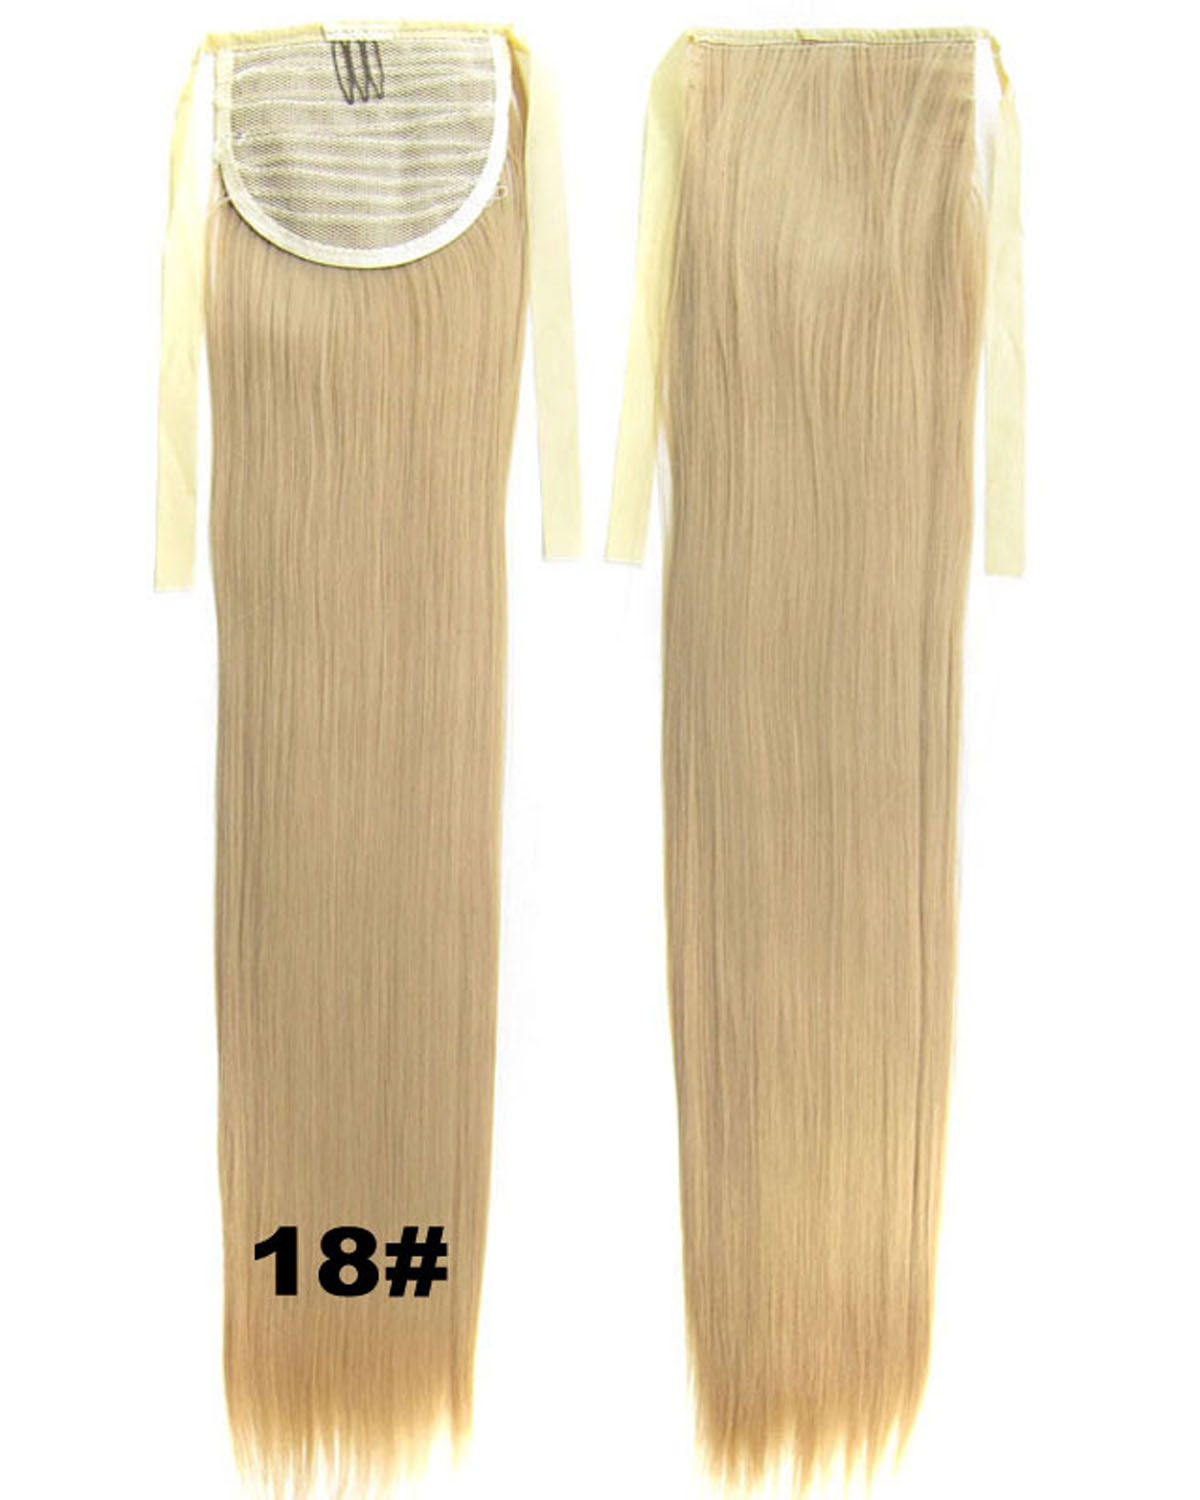 22 Inch Lady Shining Straight and Long Lace/Ribbon Synthetic Hair Ponytail 18#  Great Quality